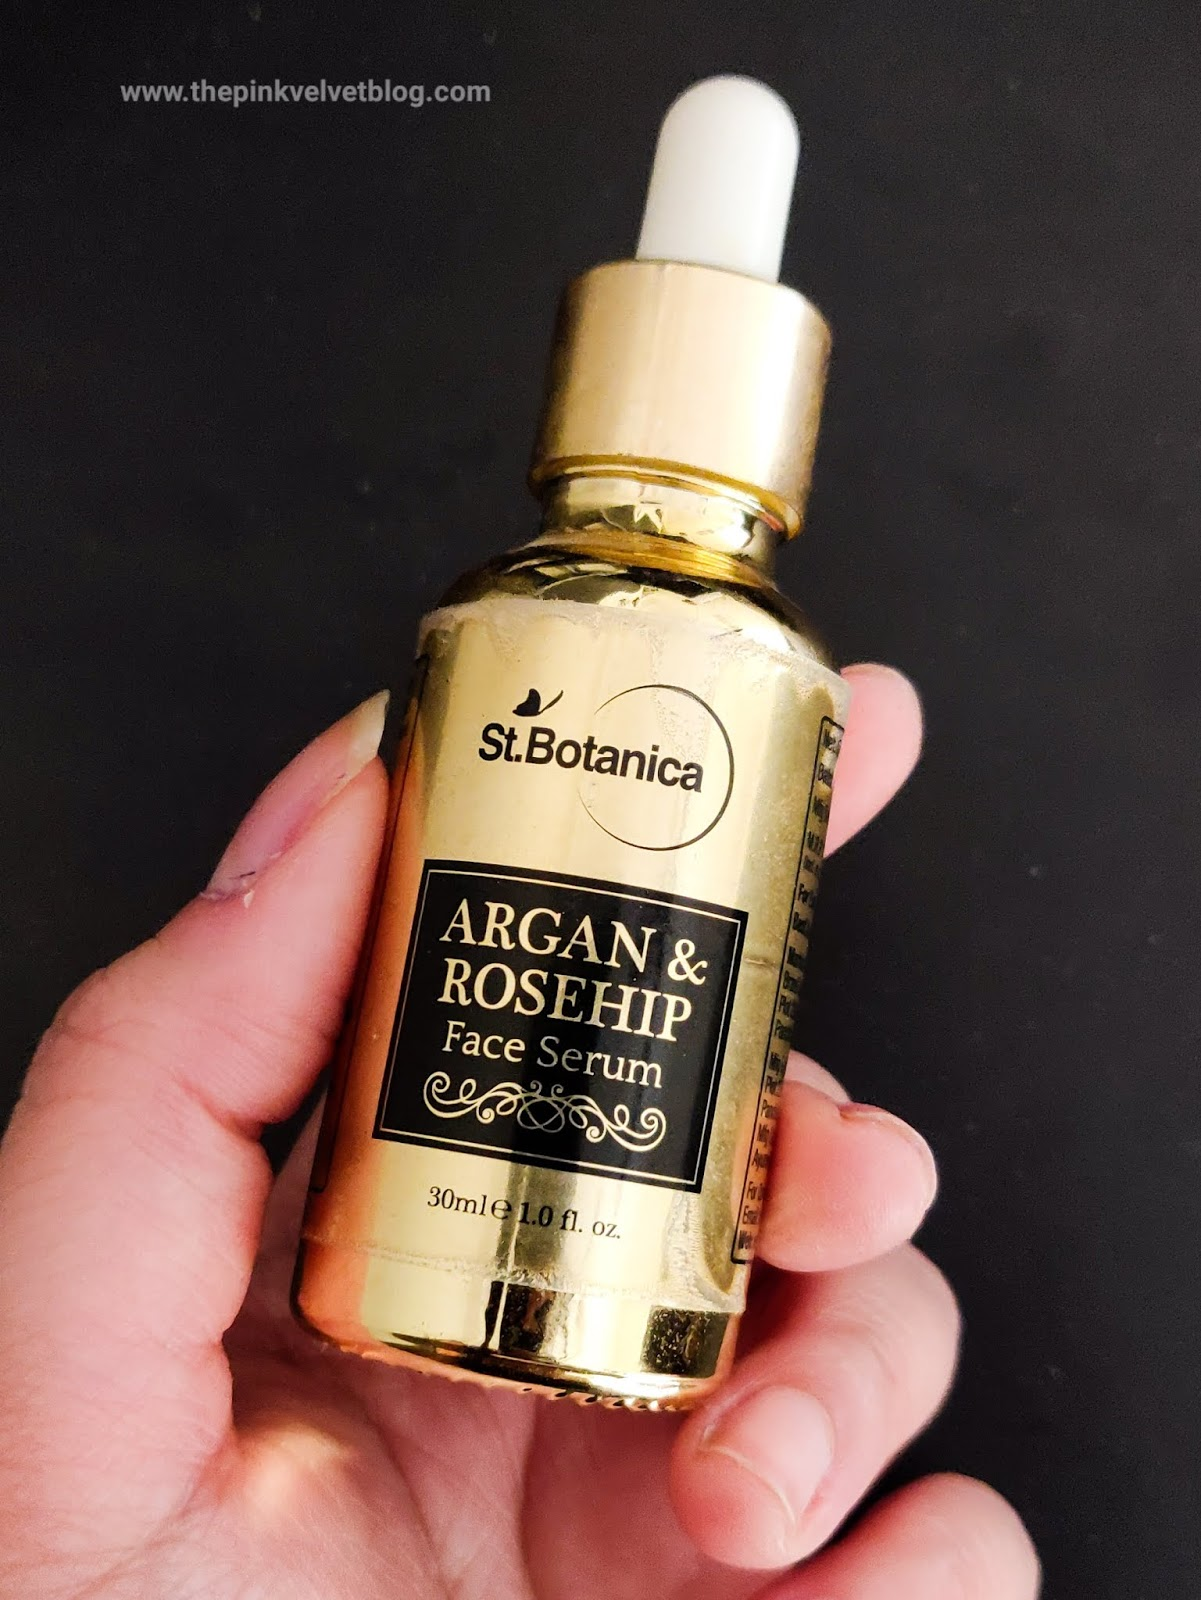 St.Botanica Argan and Rosehip Face Serum - Review